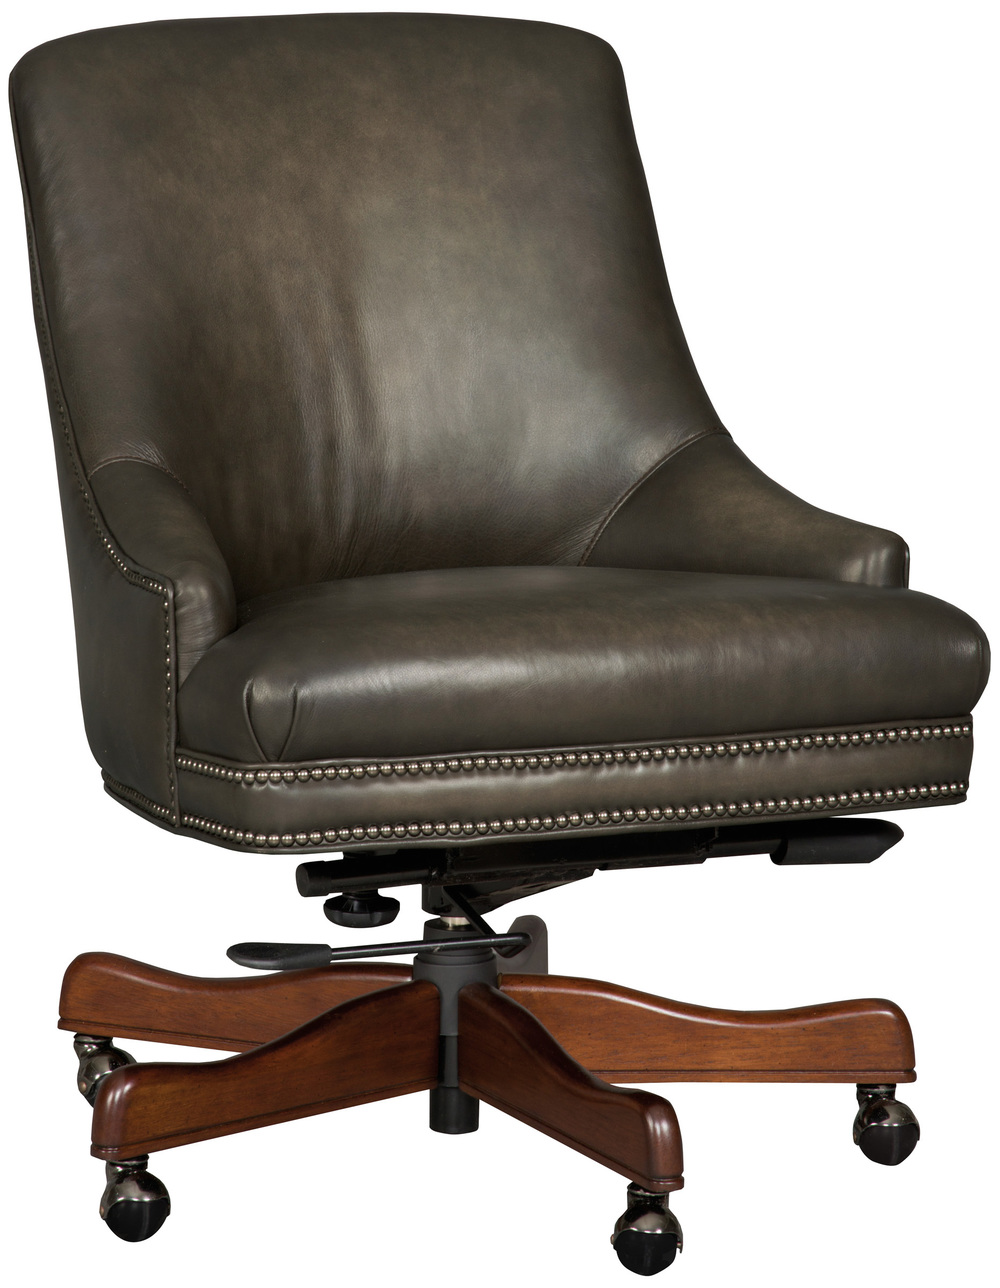 Hooker Furniture - Heidi Executive Swivel Tilt Arm Chair